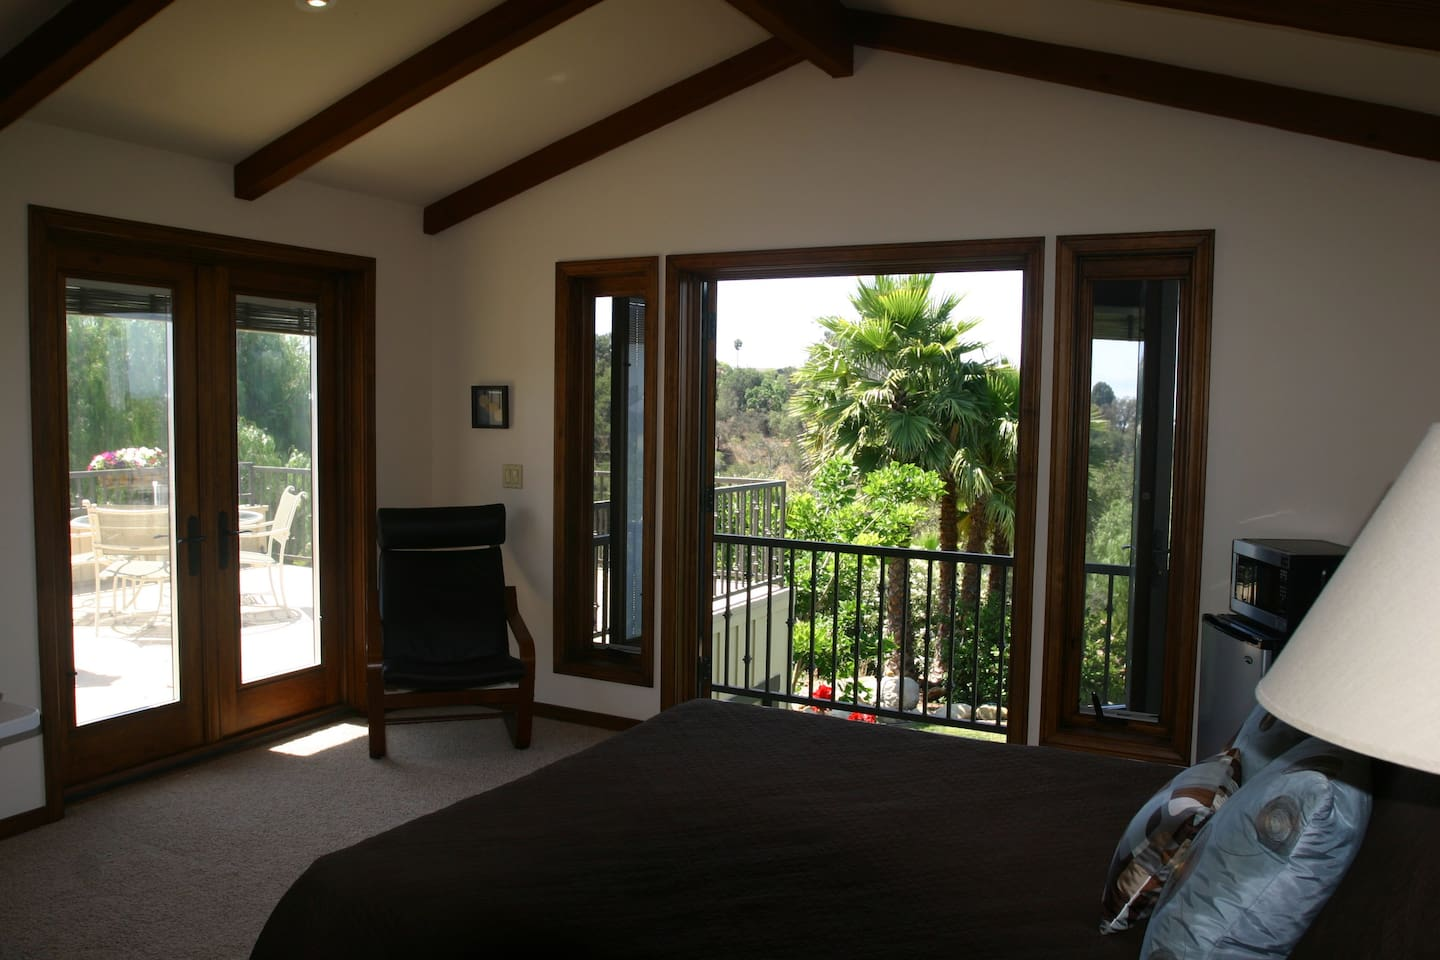 Two French Doors Leading to Deck and Balcony